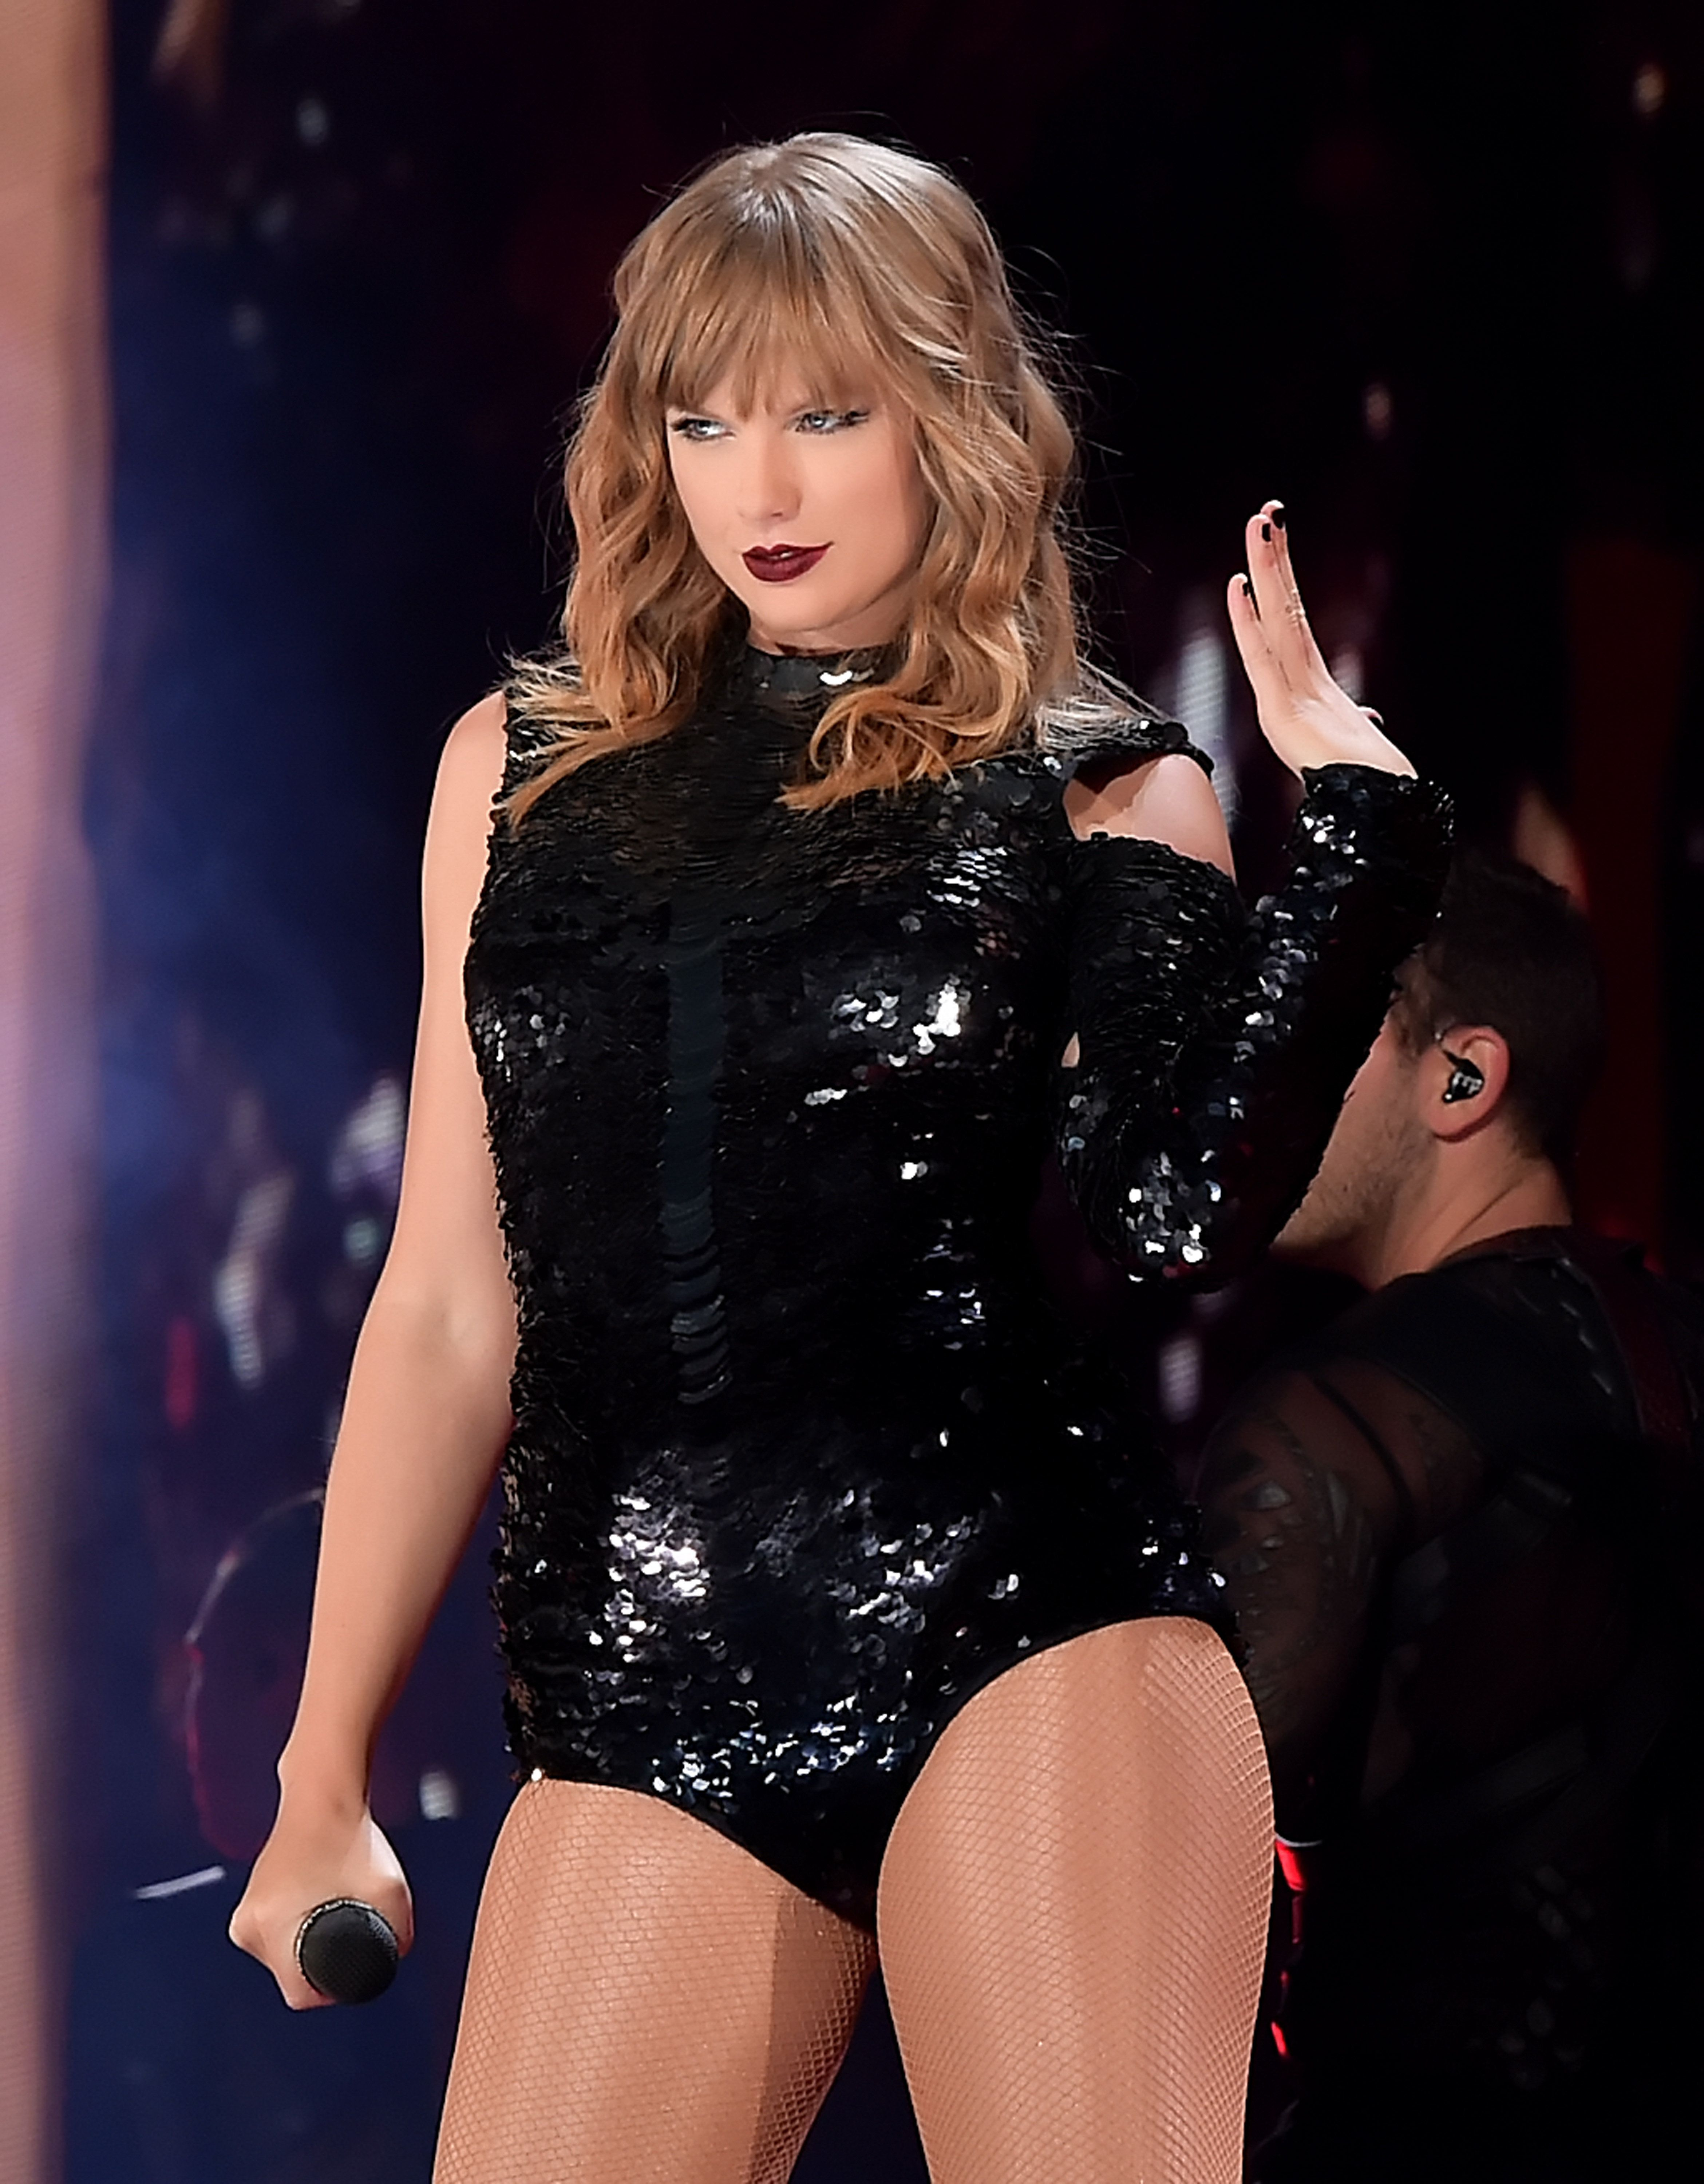 GLENDALE, AZ - MAY 08:  Taylor Swift performs onstage during opening night of her 2018 reputation Stadium Tour at University of Phoenix Stadium on May 8, 2018 in Glendale, Arizona.  (Photo by Kevin Winter/Getty Images for TAS)